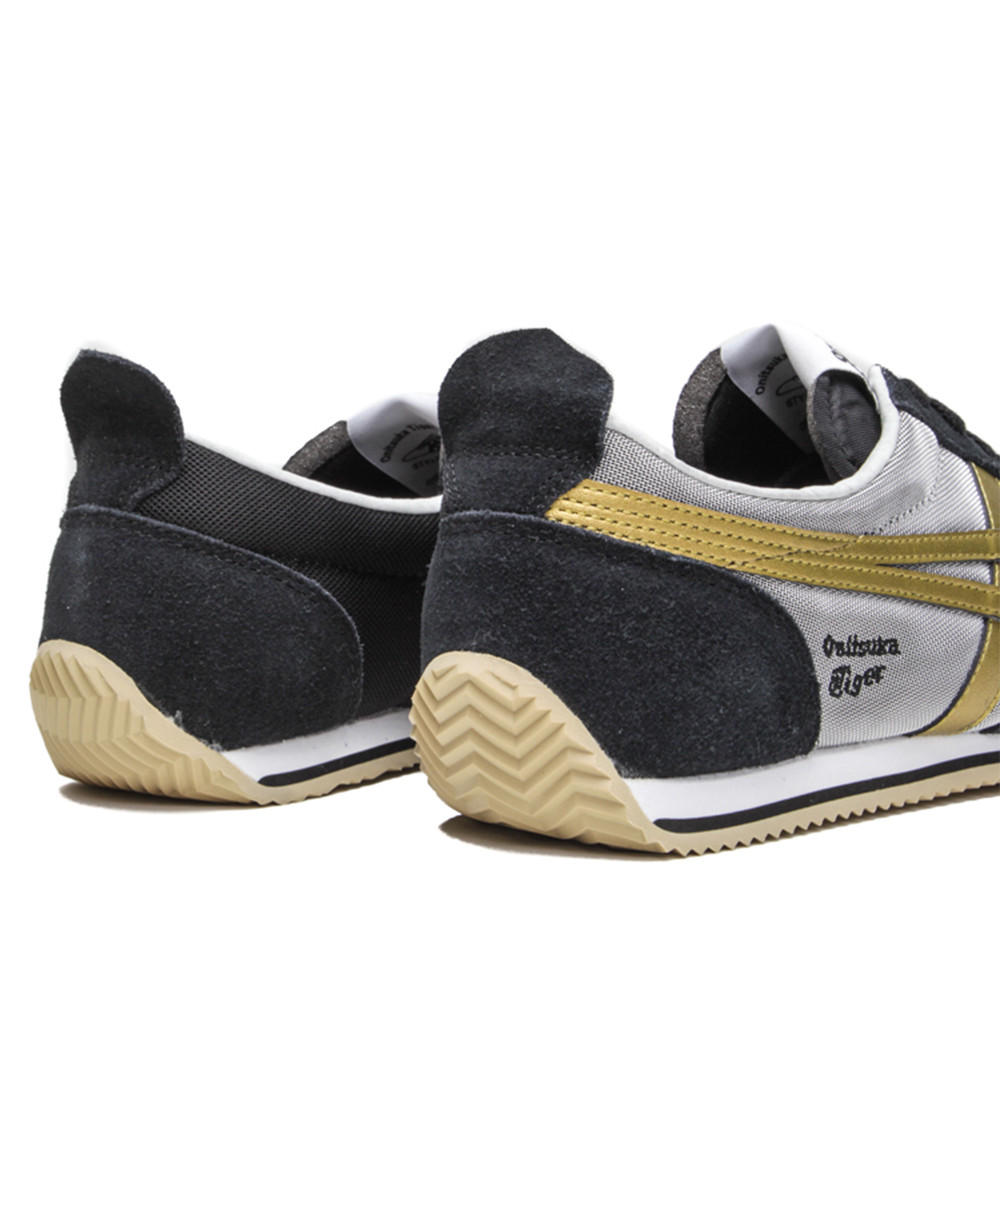 Onitsuka Tiger - Fencing (Black Gold) from Attic  a3535b7b9927